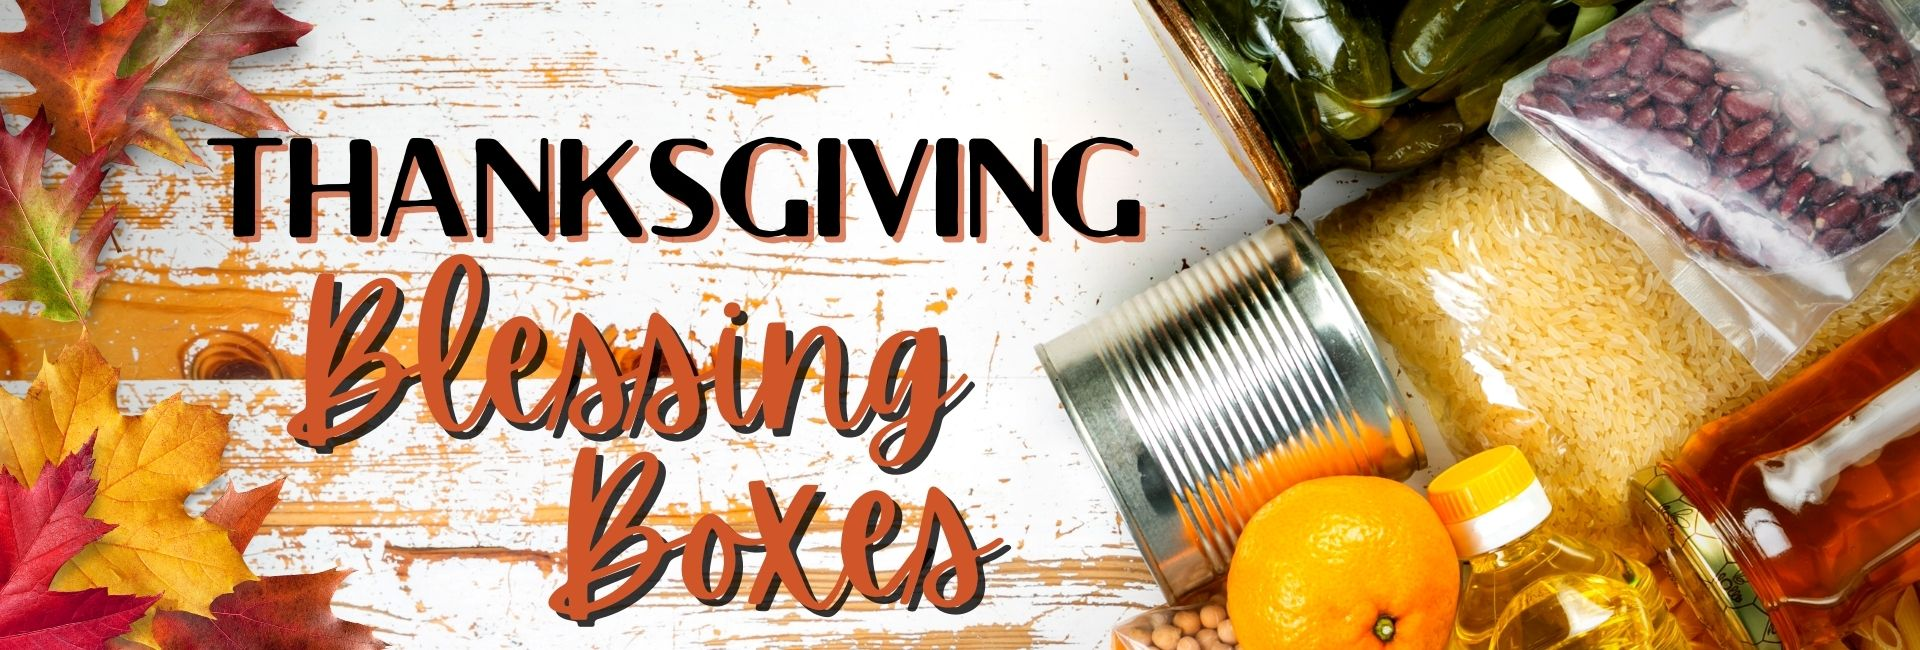 Thanksgiving Blessing Boxes 4 Web